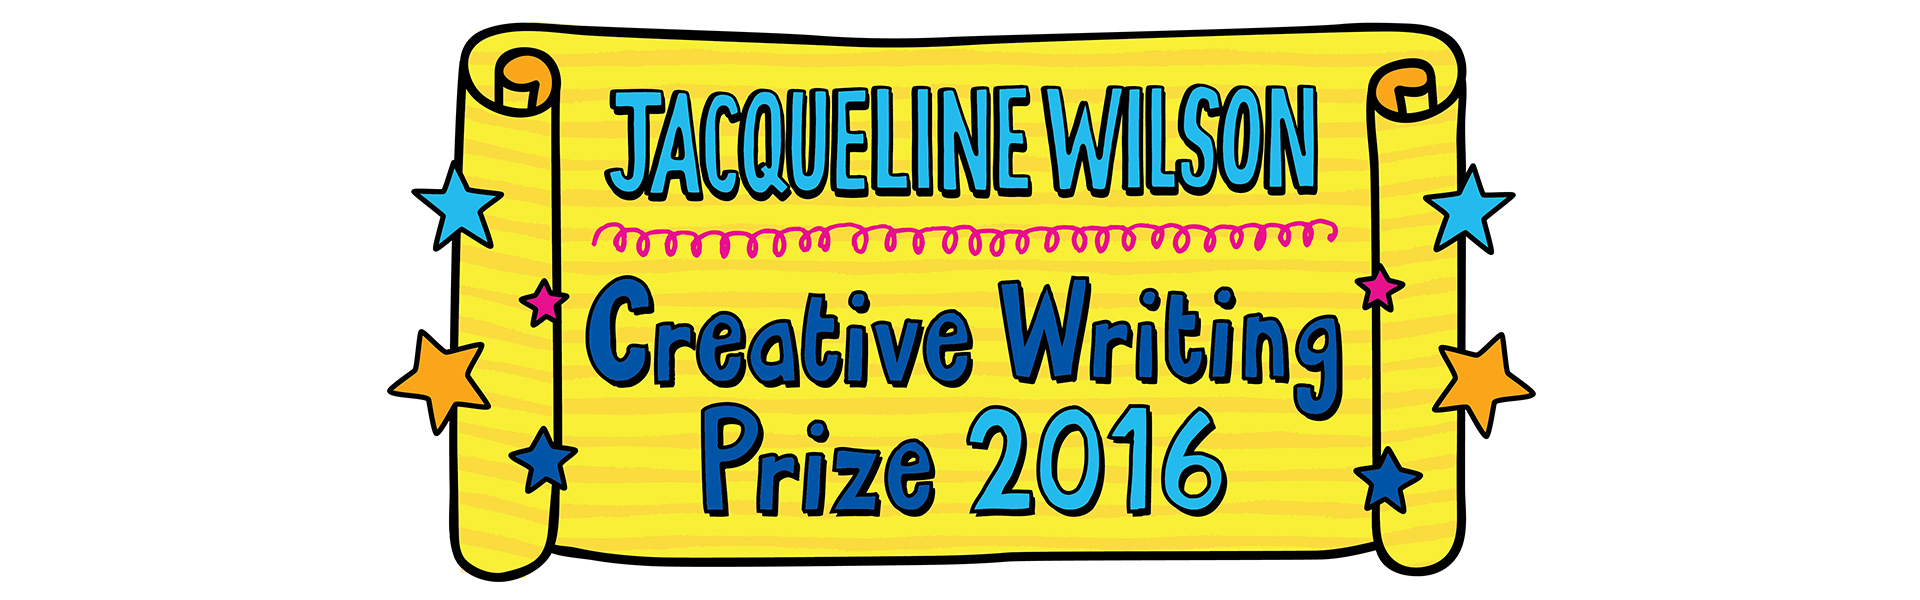 The Jacqueline Wilson Creative Writing Prize 2016